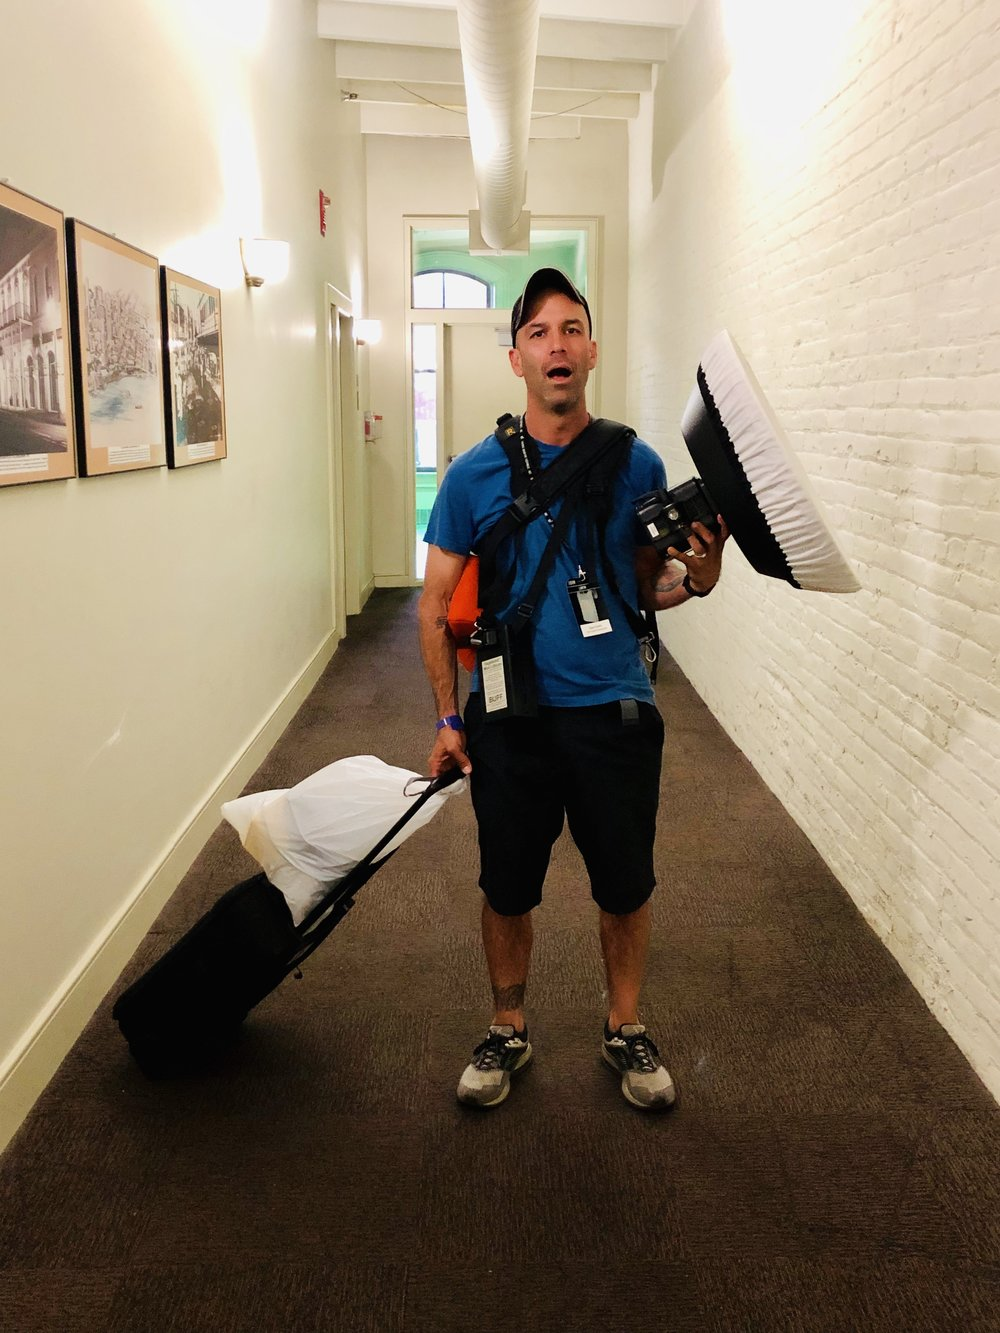 Tired photographer post-fest with gear. Photo by Matt Owens.